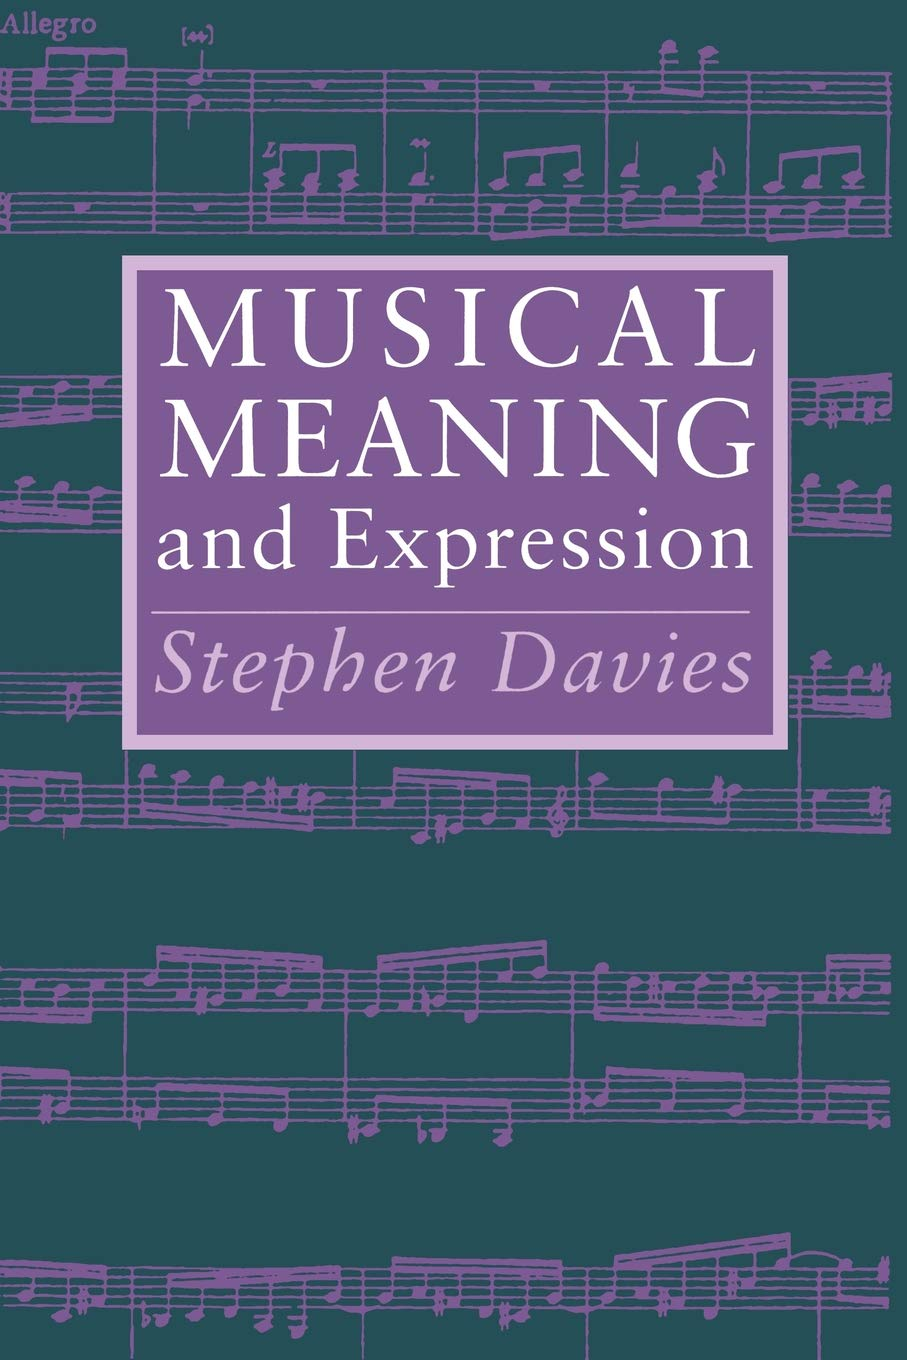 Musical Meaning and Expression: Stephen Davies